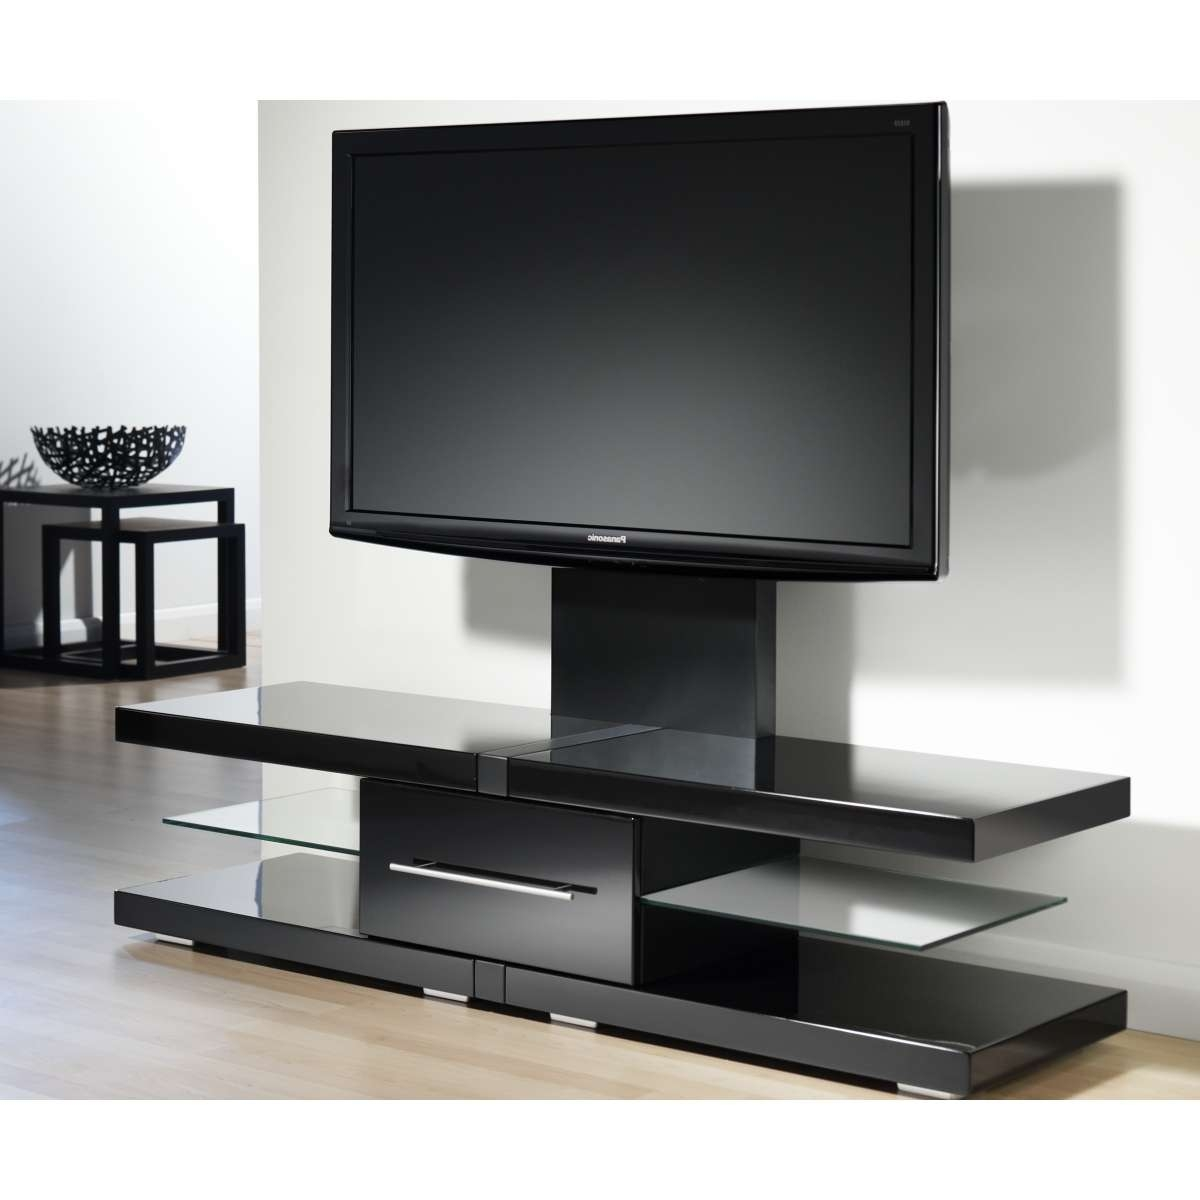 Beautiful Flat Screen Tv Stands With Mounts 38 For Simple Home Regarding Tv Stands 38 Inches Wide (View 3 of 15)